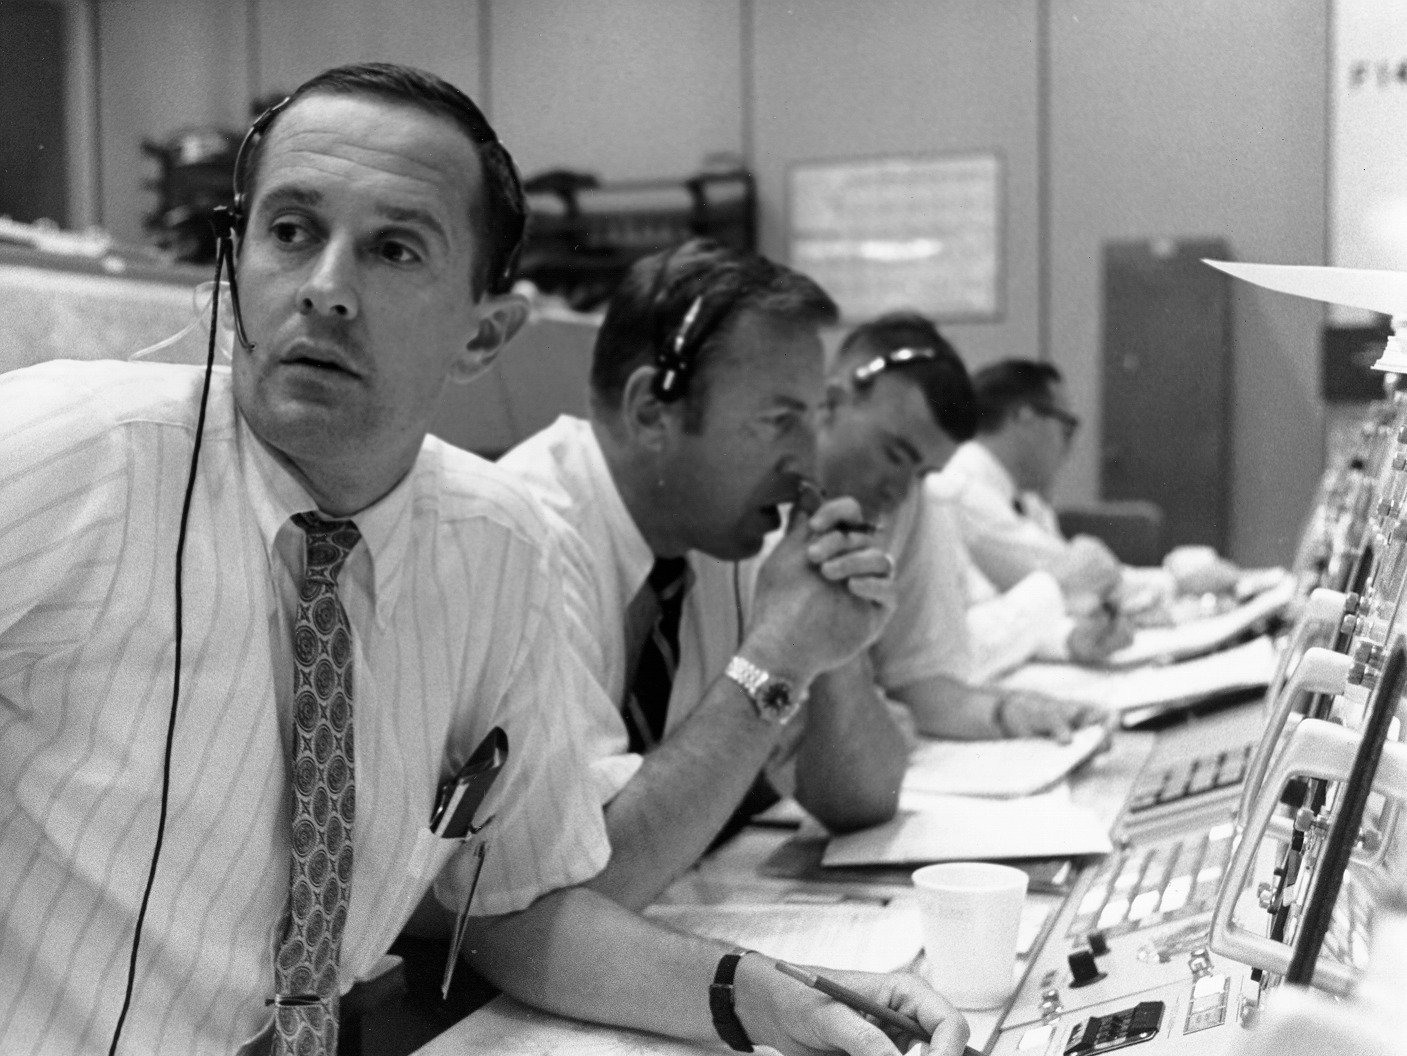 CAPCOM Charlie Duke (foreground) with backup commander Jim Lovell (center) during Apollo 11's tense landing.